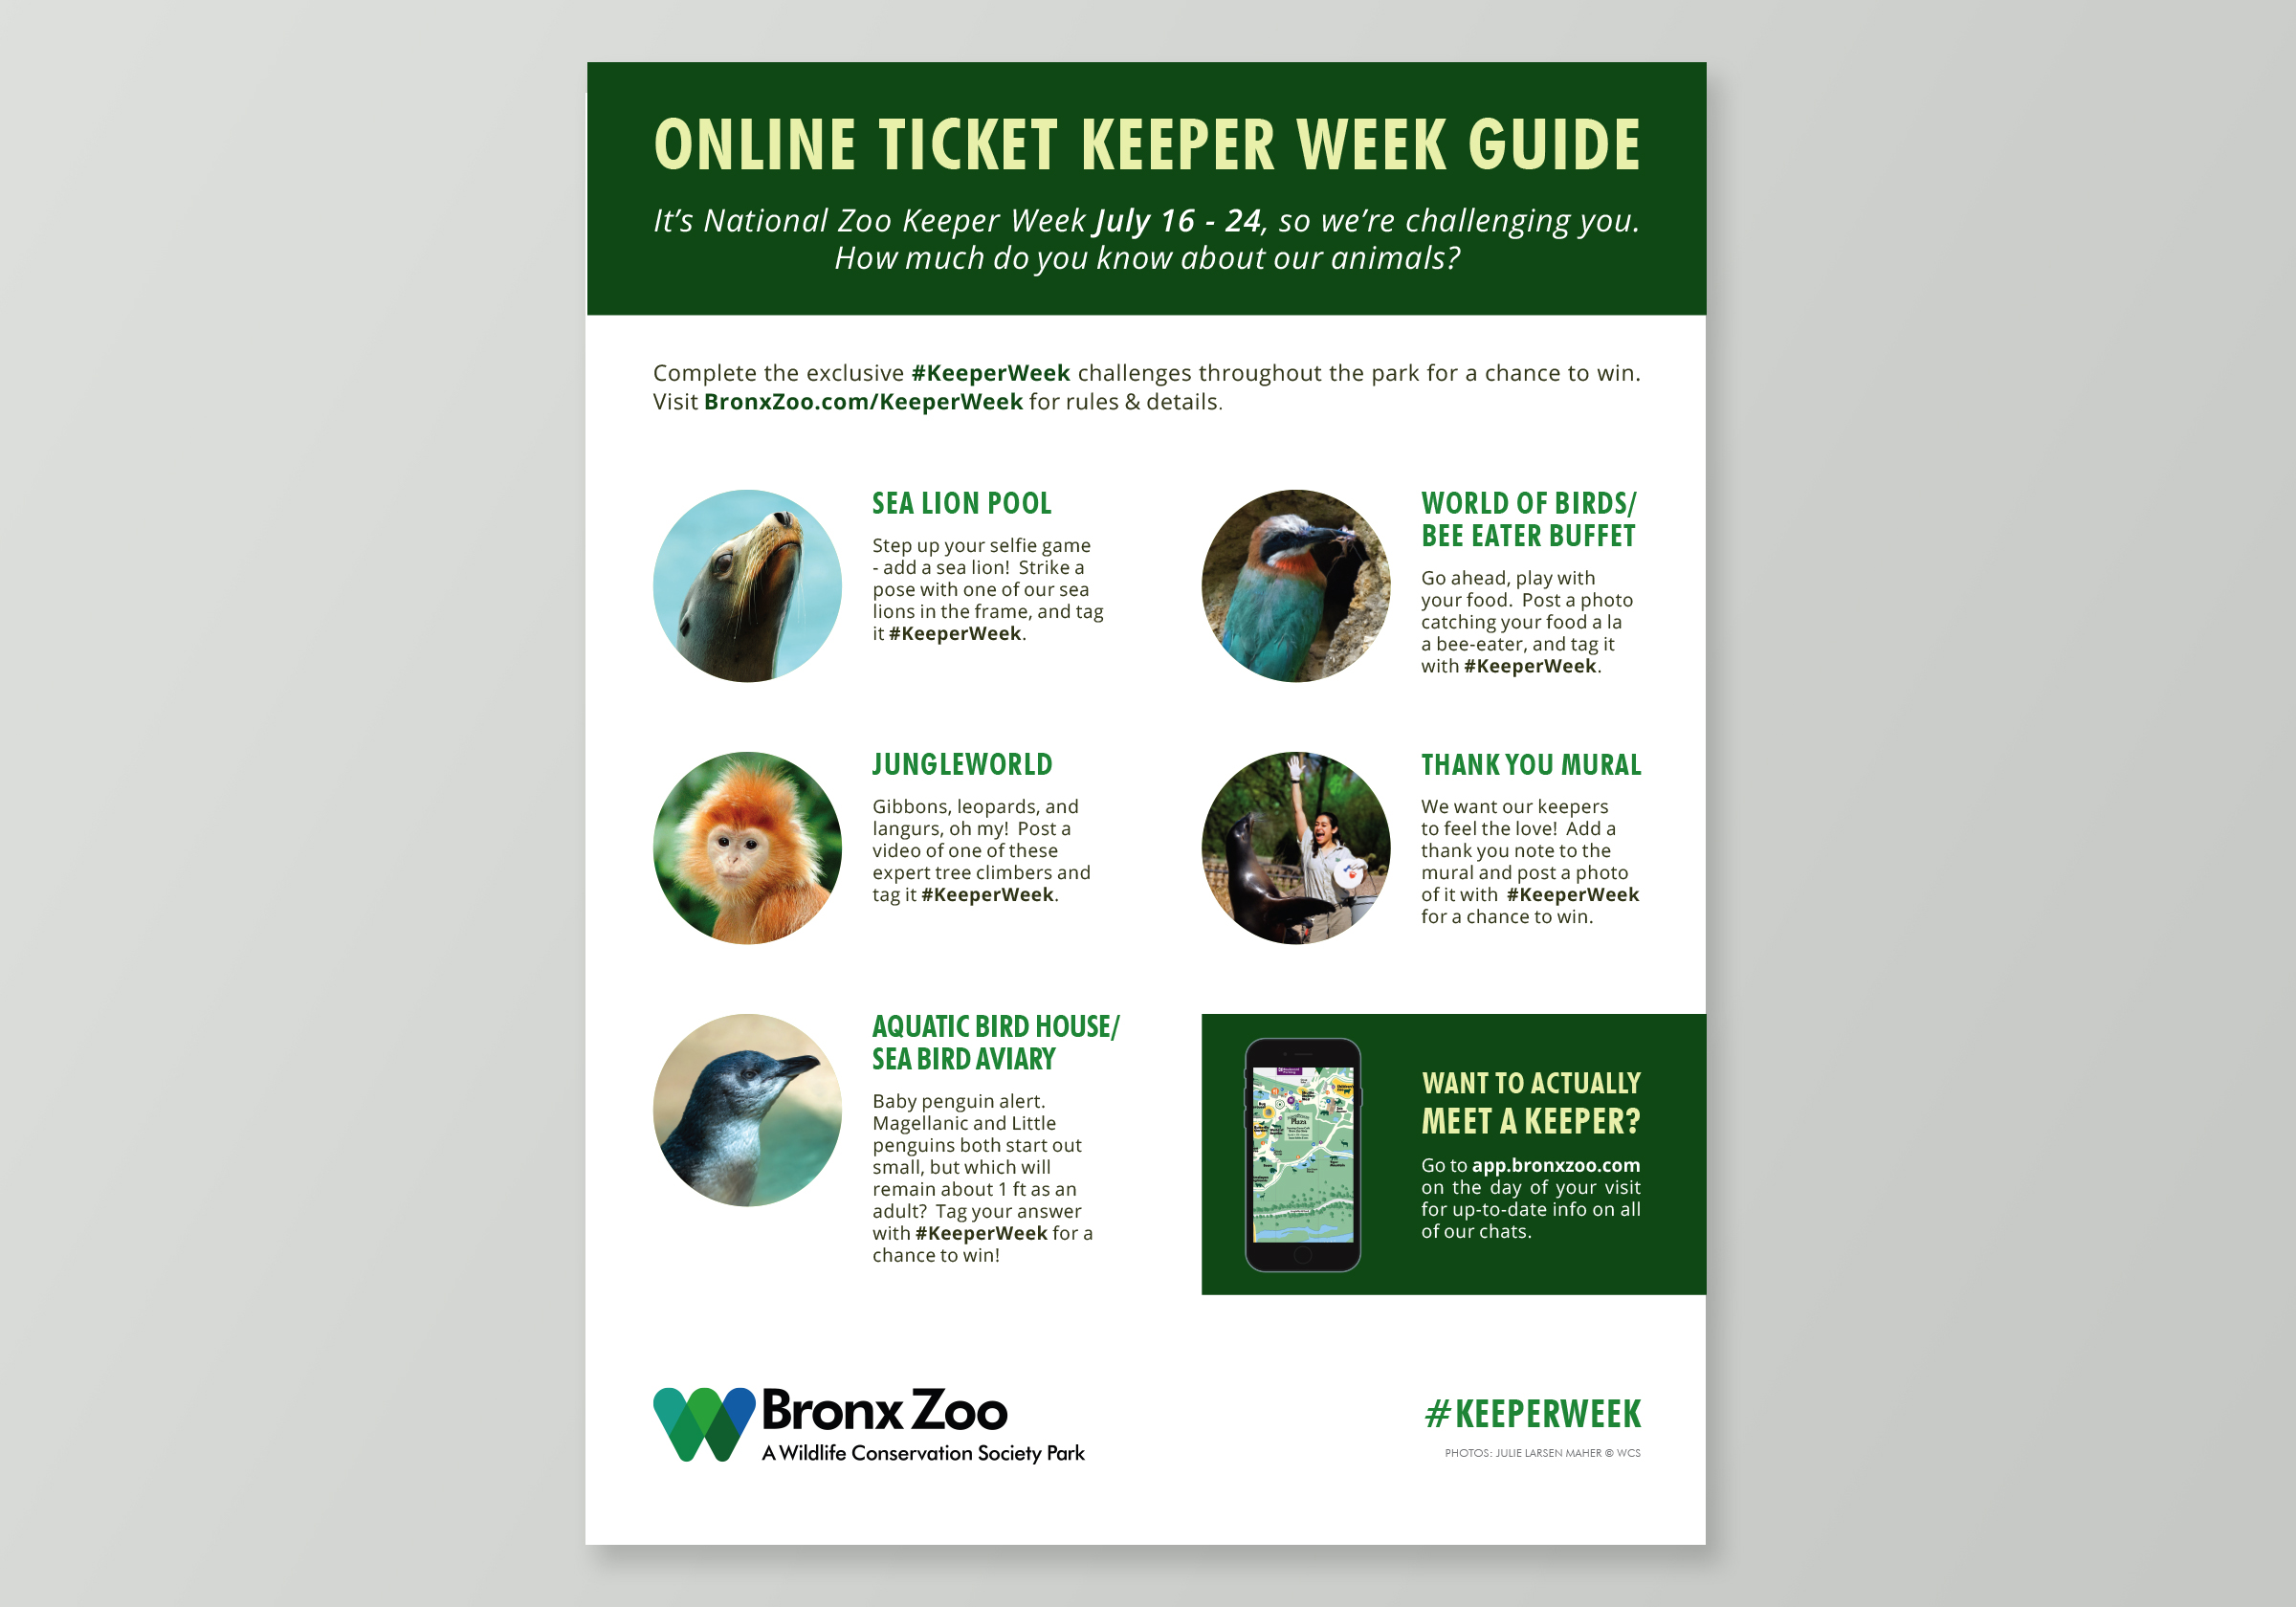 Bronx Zoo Keeper Week